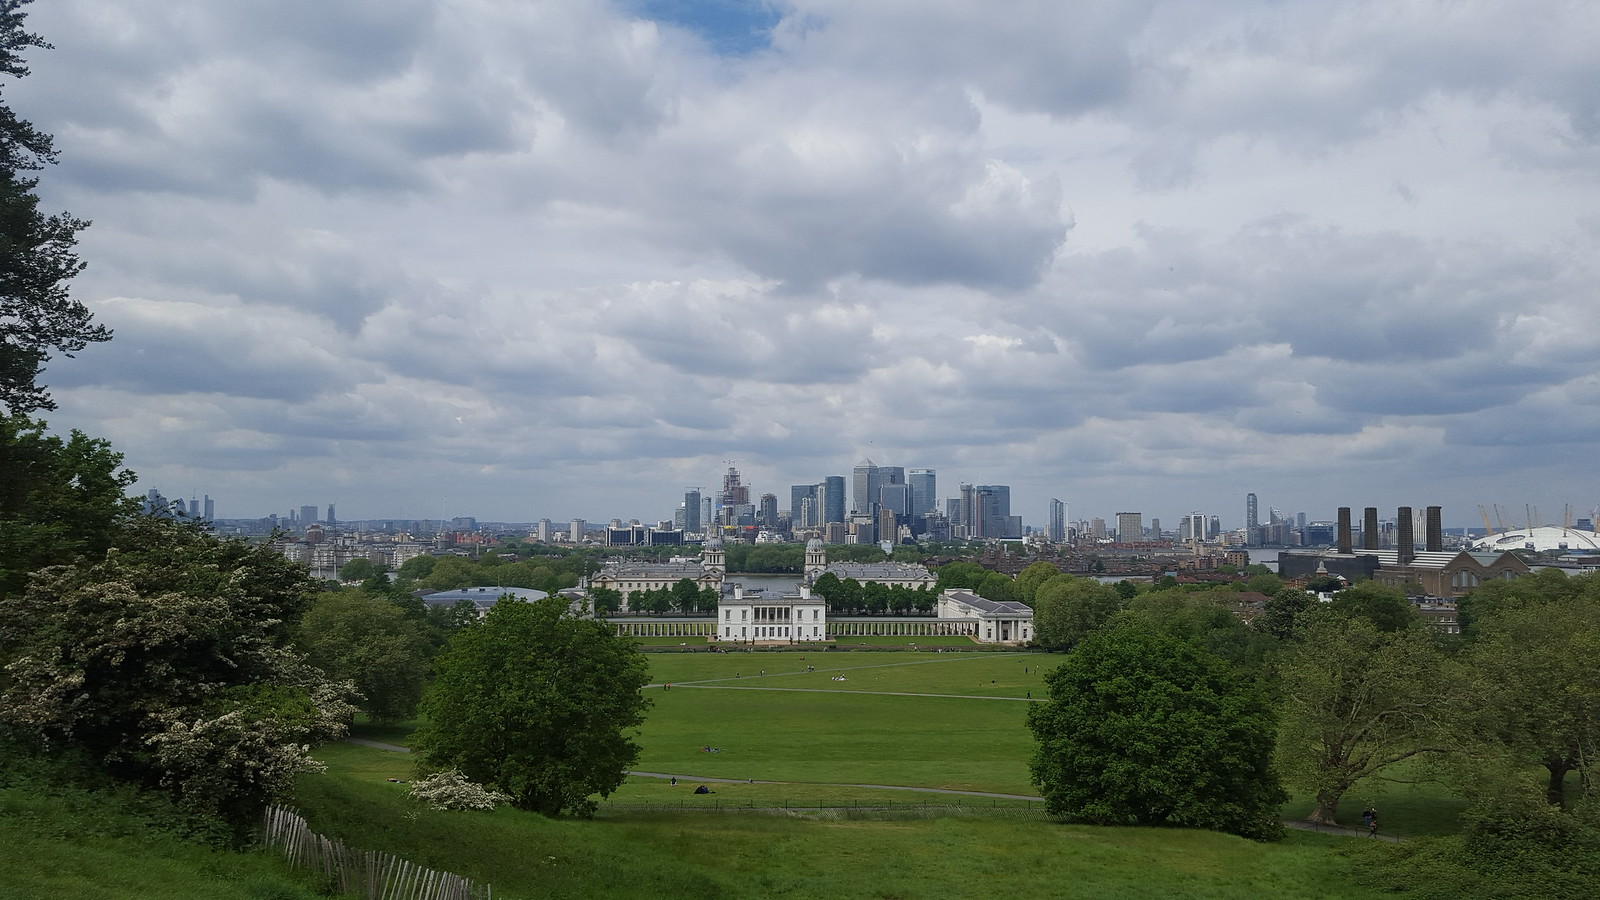 Blackheath to Canary Wharf walk